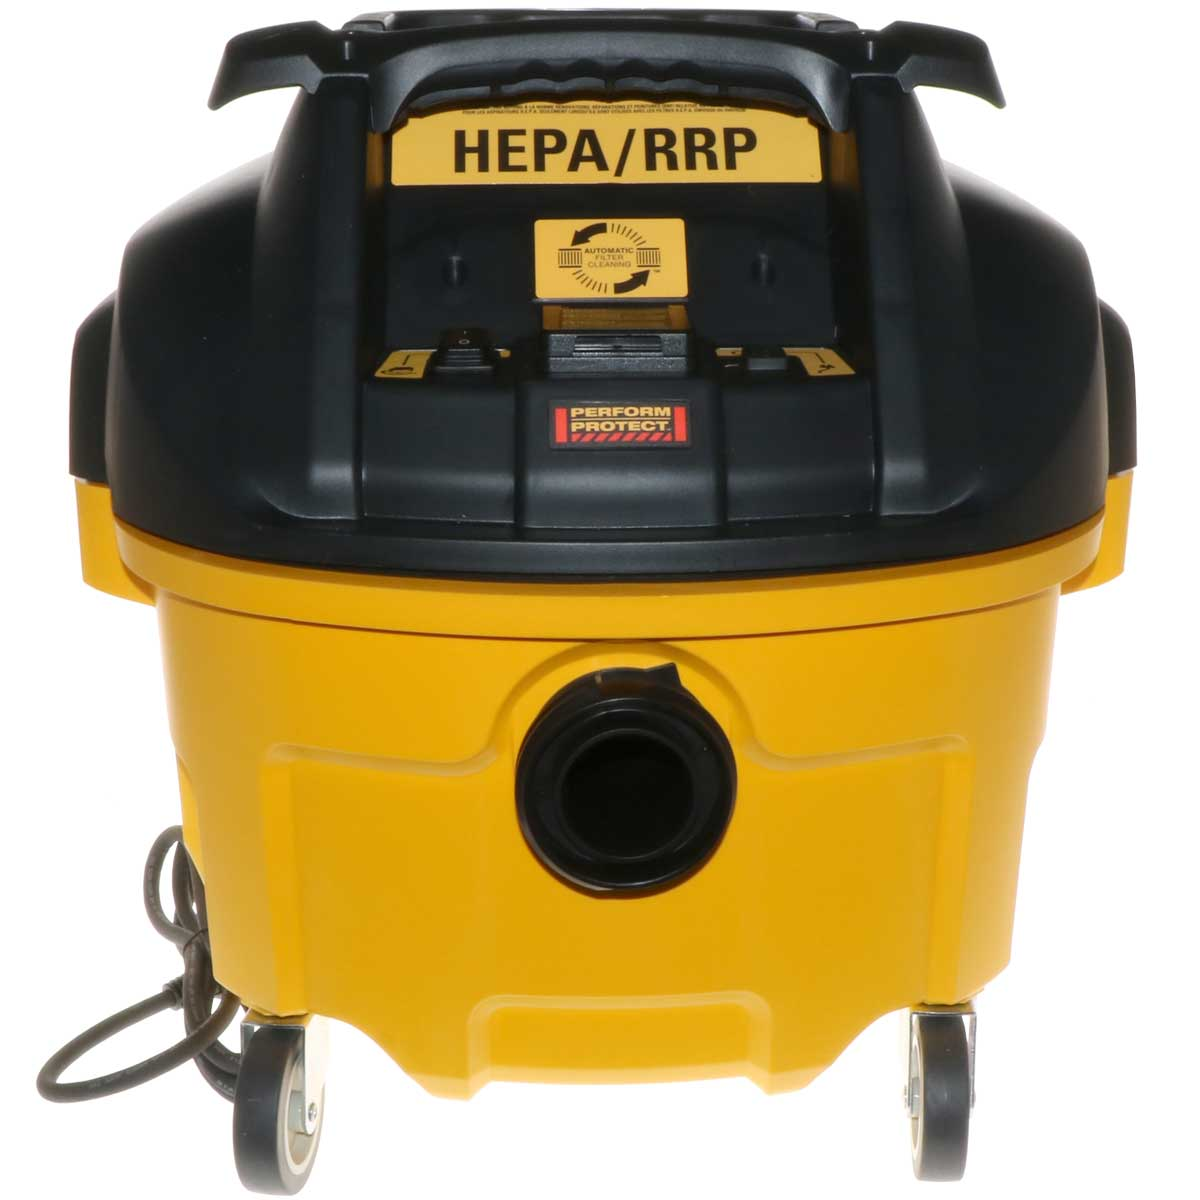 DeWalt 8gal HEPA Vac with Auto Filter Cleaning